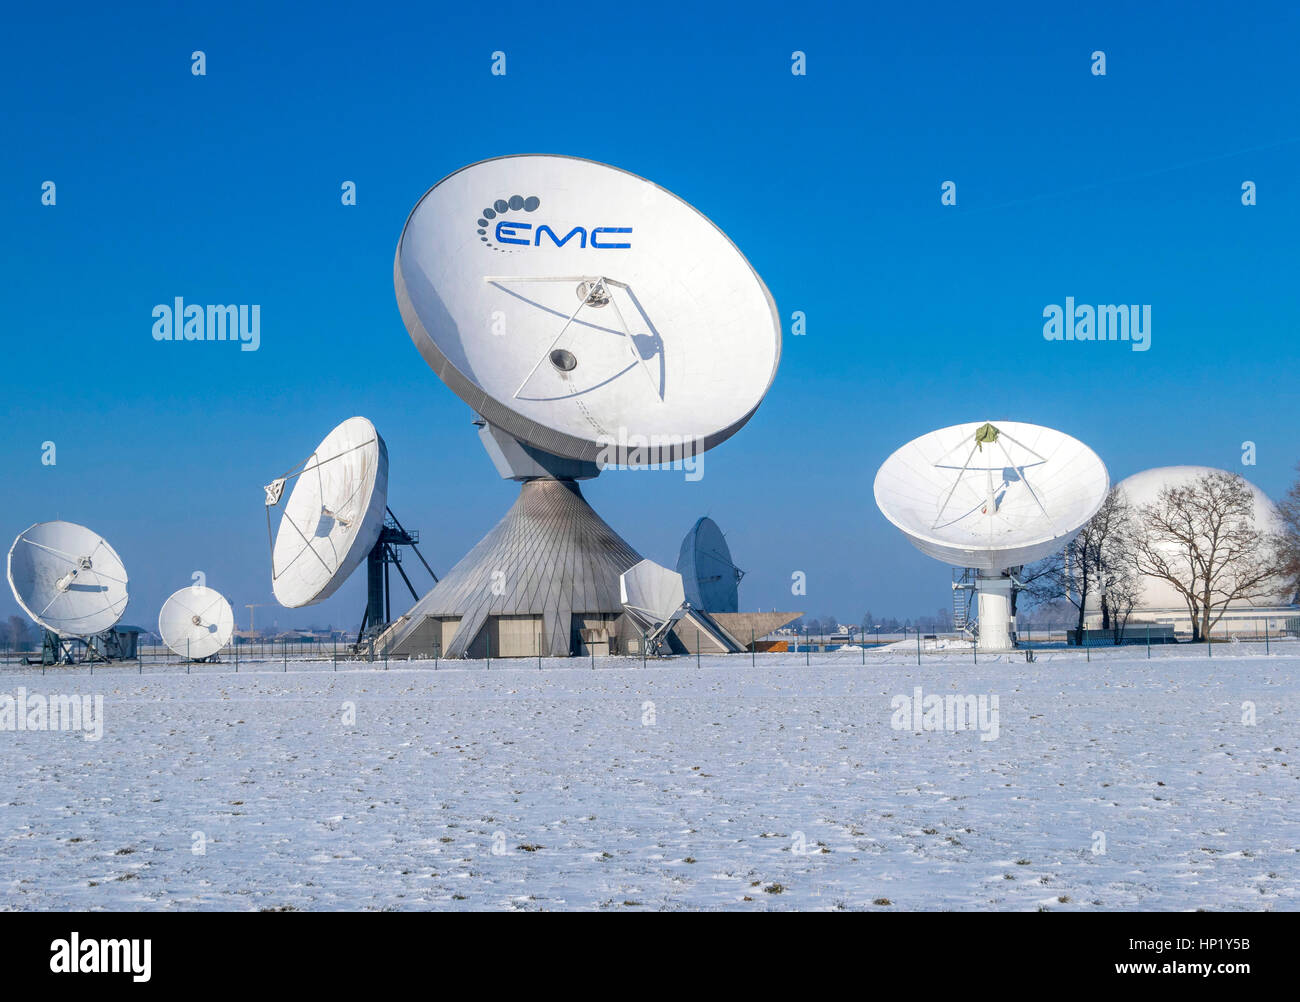 Satellite dish, Raisting Satellite Earth Station in Winter, ground station, satellite communications, Upper Bavaria, Stock Photo